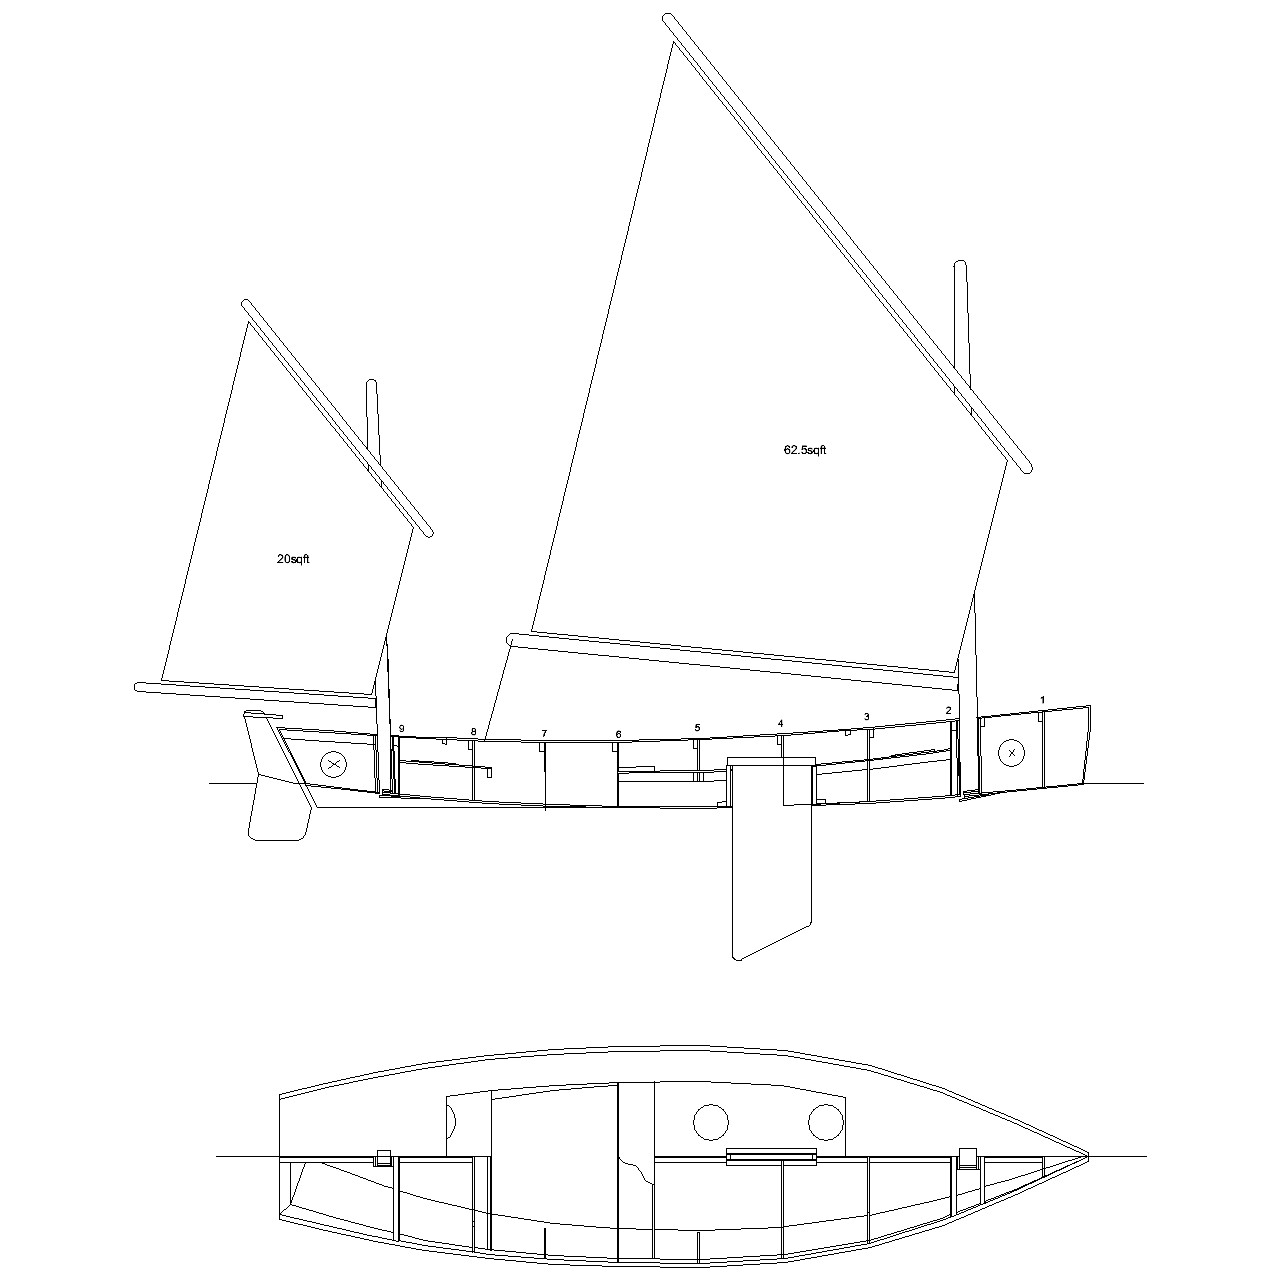 Light Trow Mk 2 plans now available! | intheboatshed.net